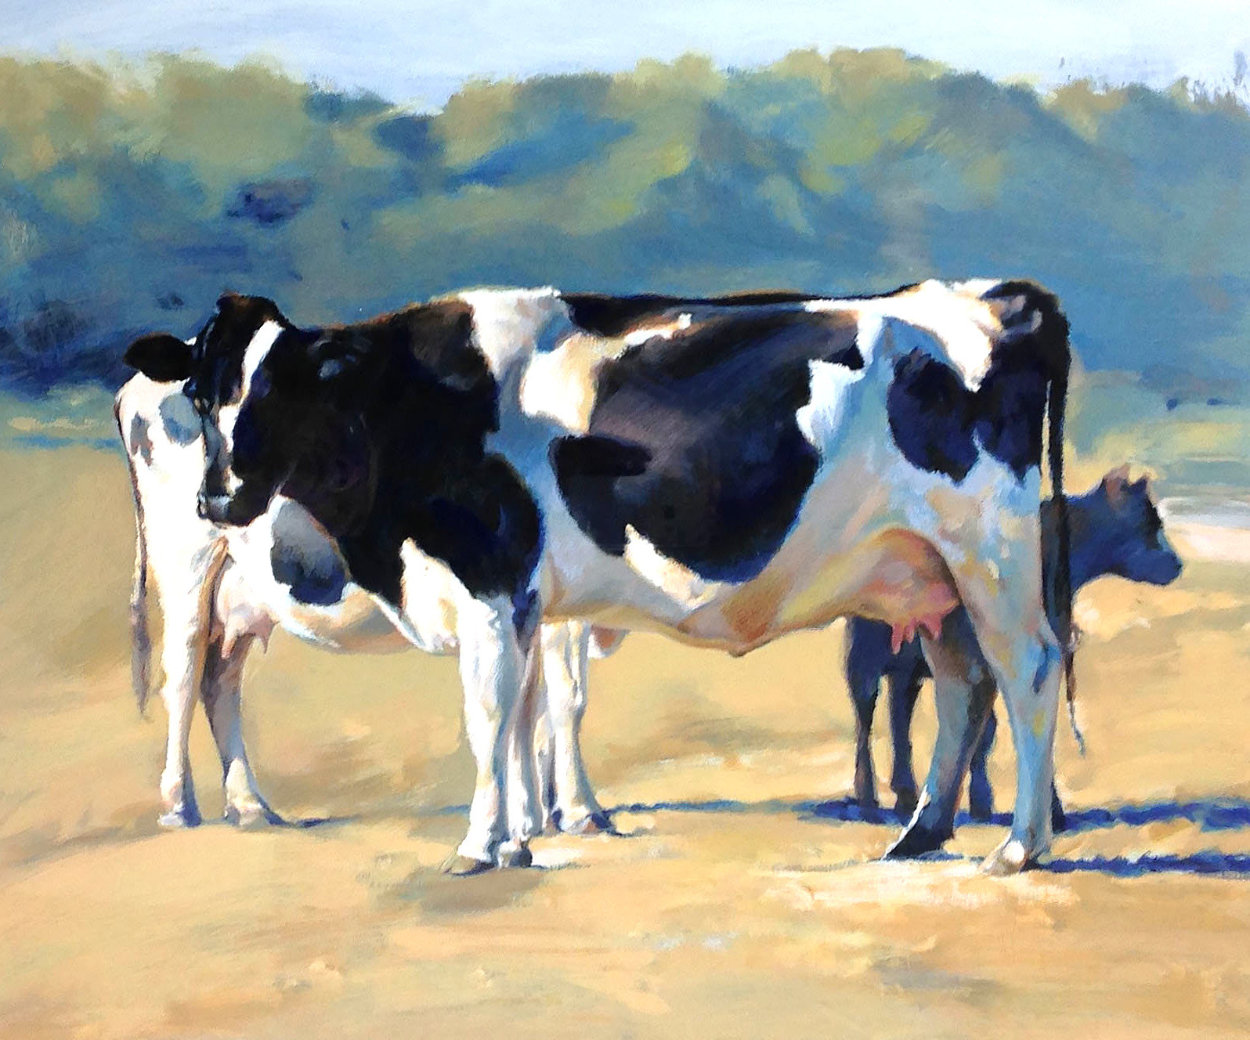 Cows 1990 Limited Edition Print by Chase Chen